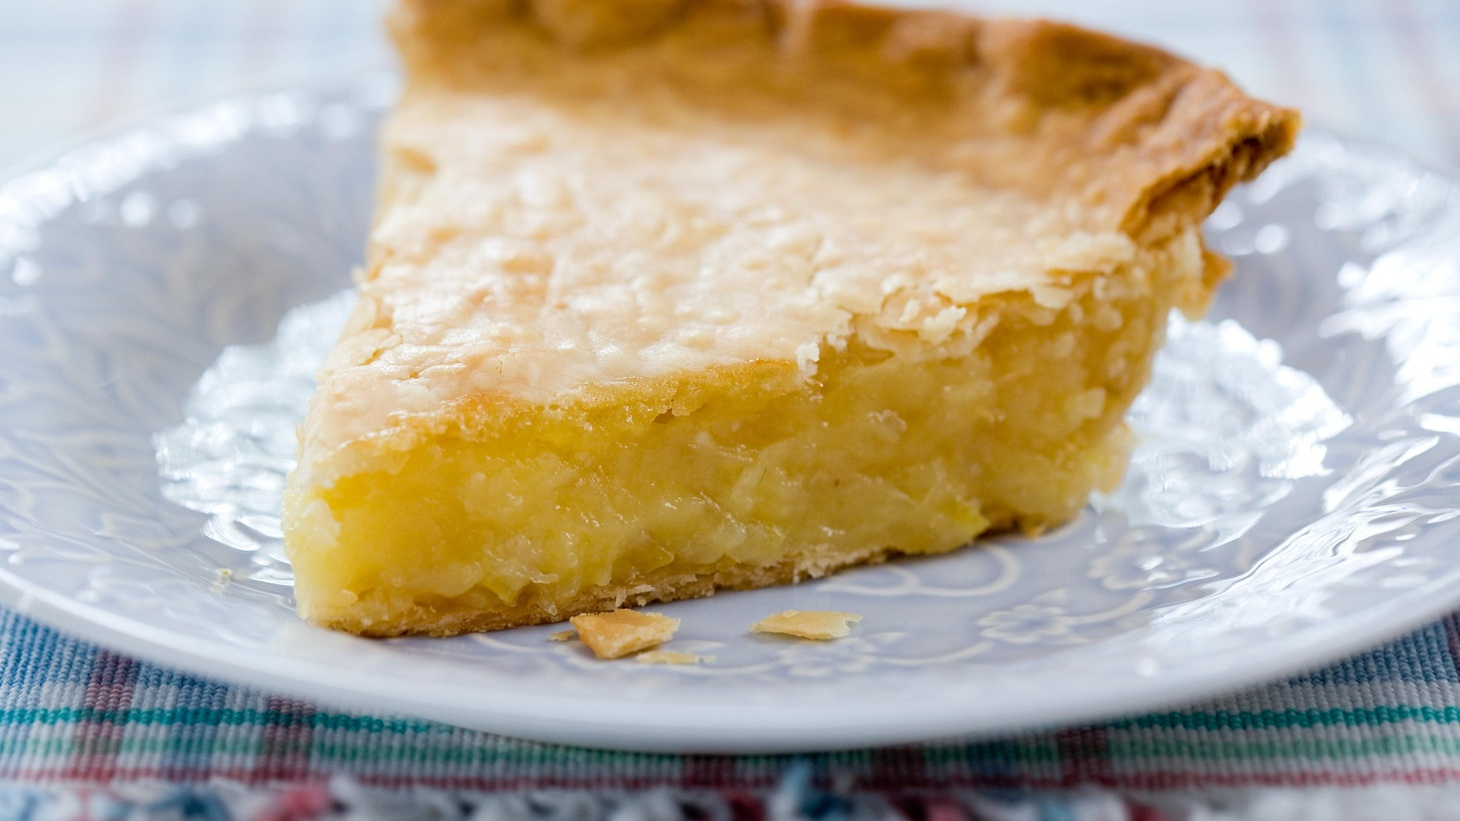 Jack Bishop of America's Test Kitchen on PBS shares stories and recipes for American lost pies - desserts of a bygone era.